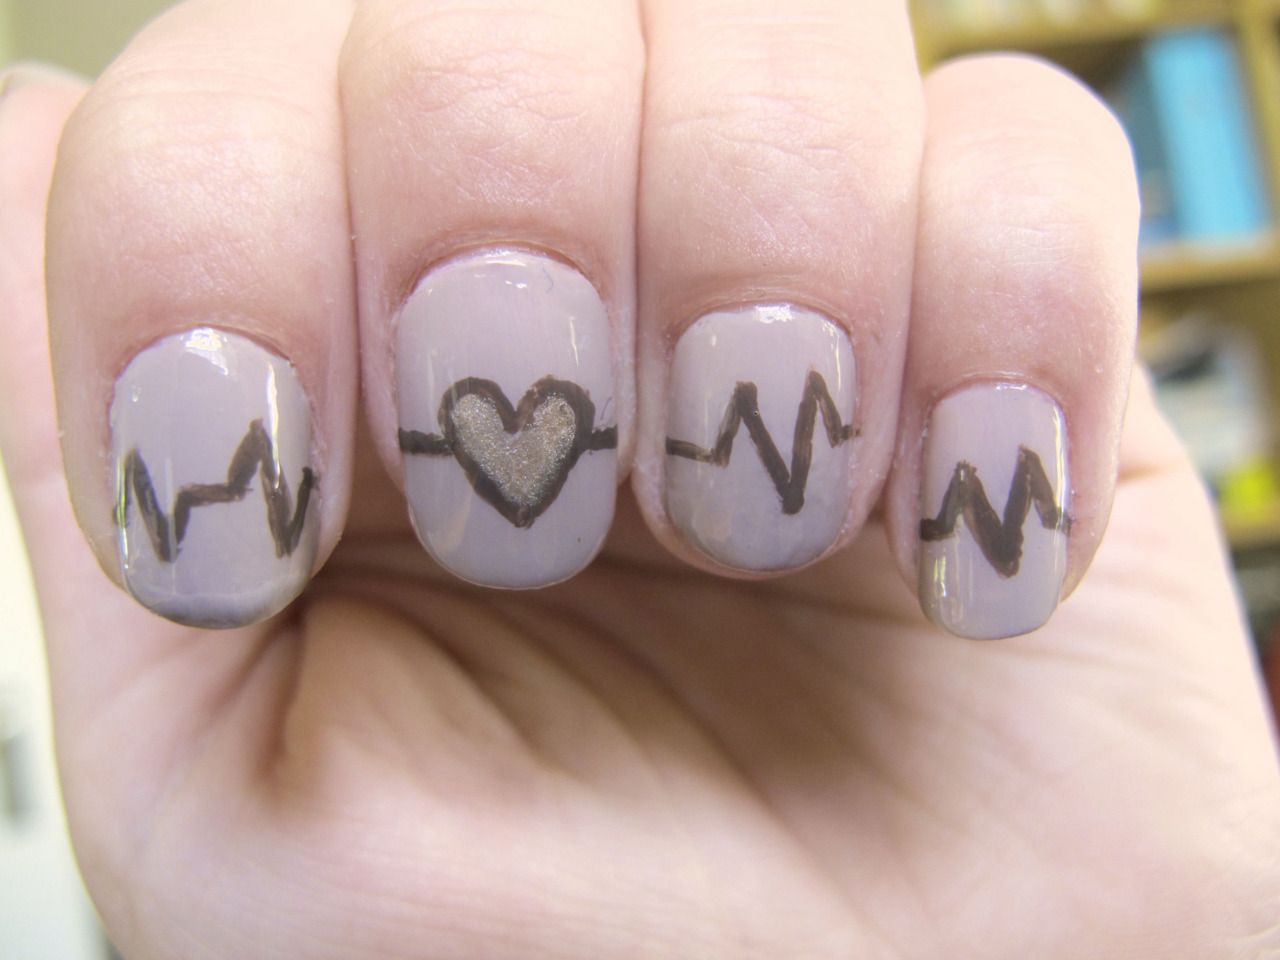 EKG Nails - I think this is really funny | nails | Pinterest